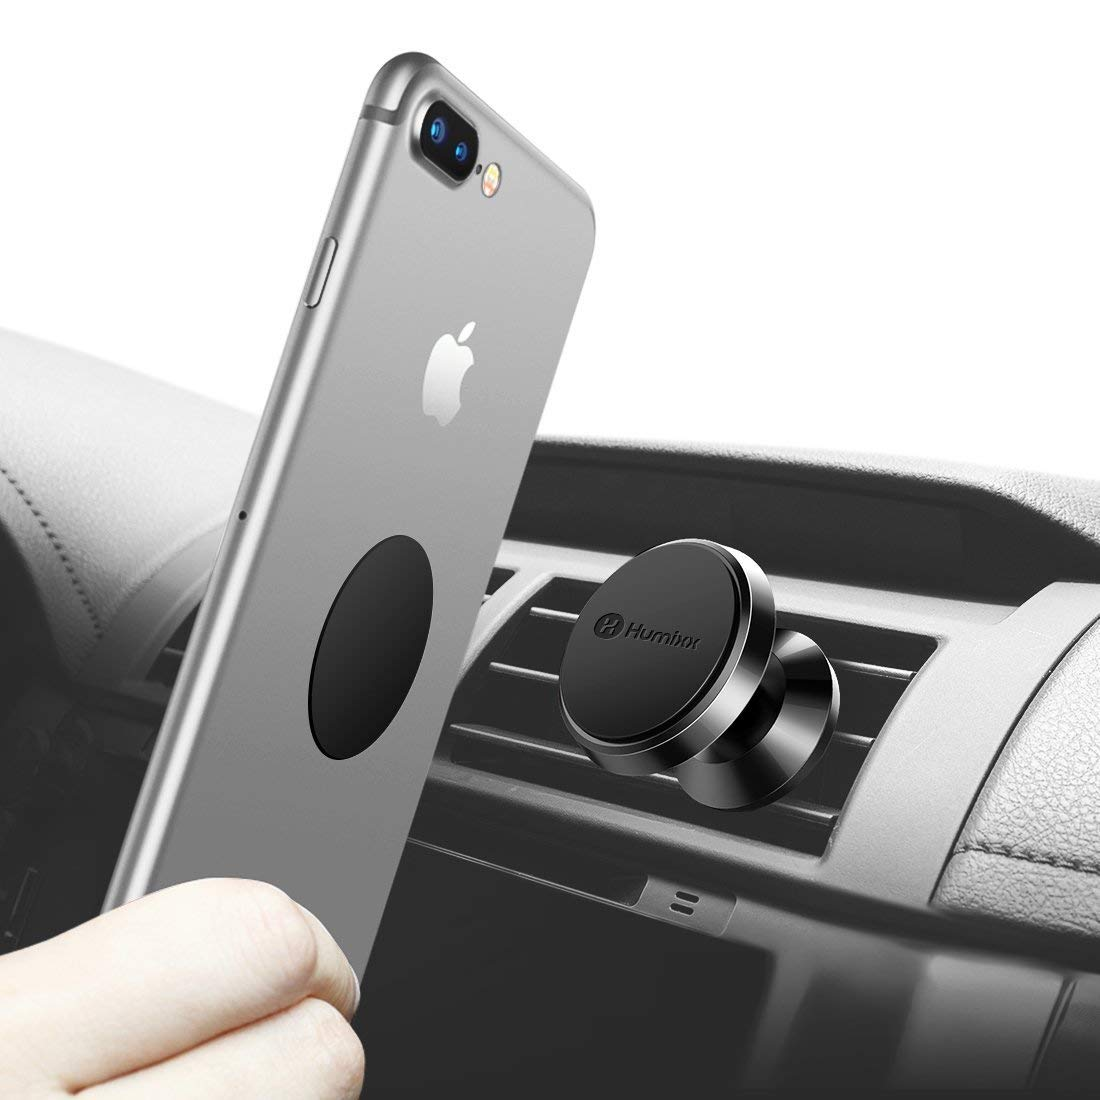 Humixx Magnetic Phone Holder for Car, 360° Adjustable Air Vent Cellphone Car Mount Holder for iPhone 8 8 Plus 7 7 Plus,Samsung S7 S8, HTC, LG, ZTE [Easy Clamping Series] (Black)